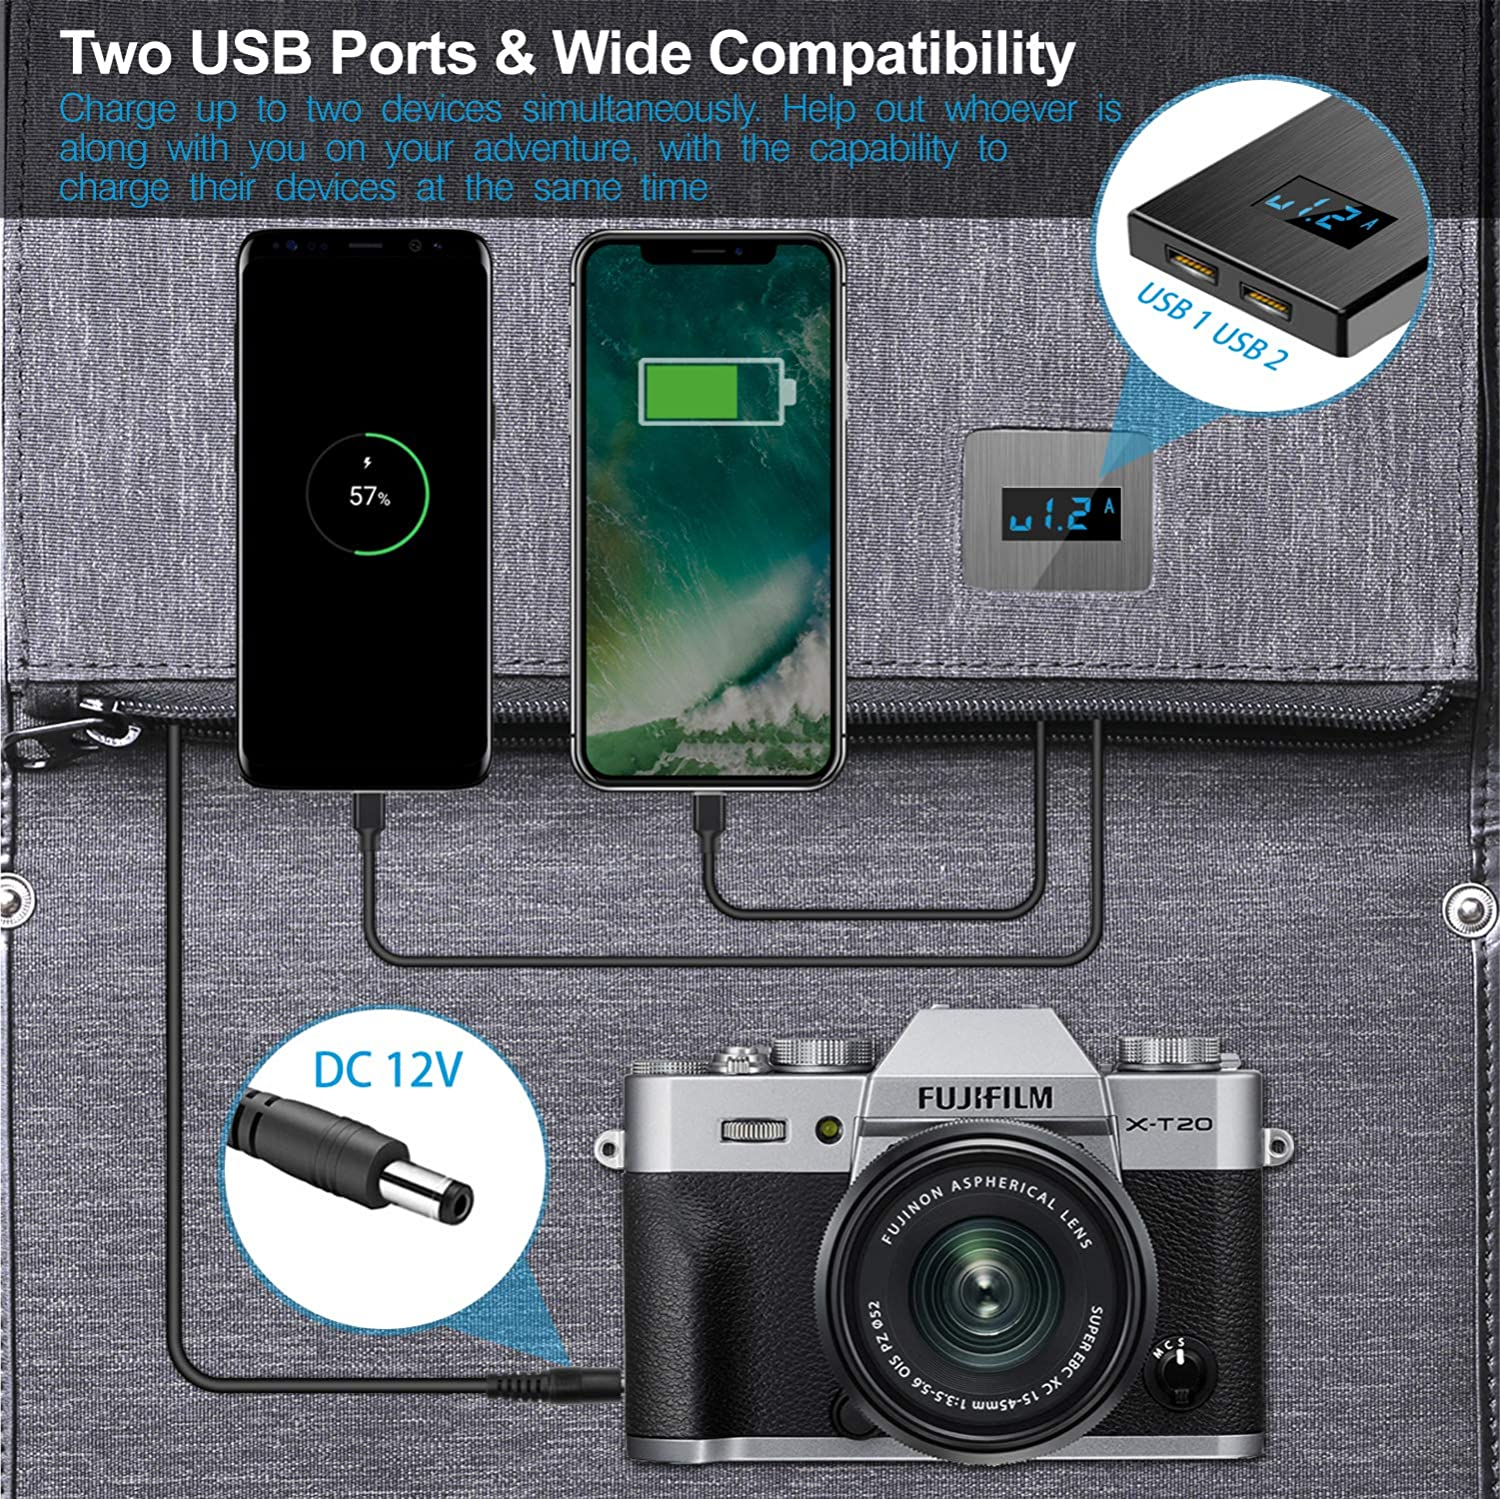 Waterproof Portable for Outdoor Camping Solar Charger Solar Panel Charger VITCOCO 16W Foldable Solar Phone Charger with 2 USB Ports /& Display Function for iPhone Power Bank Android iPad